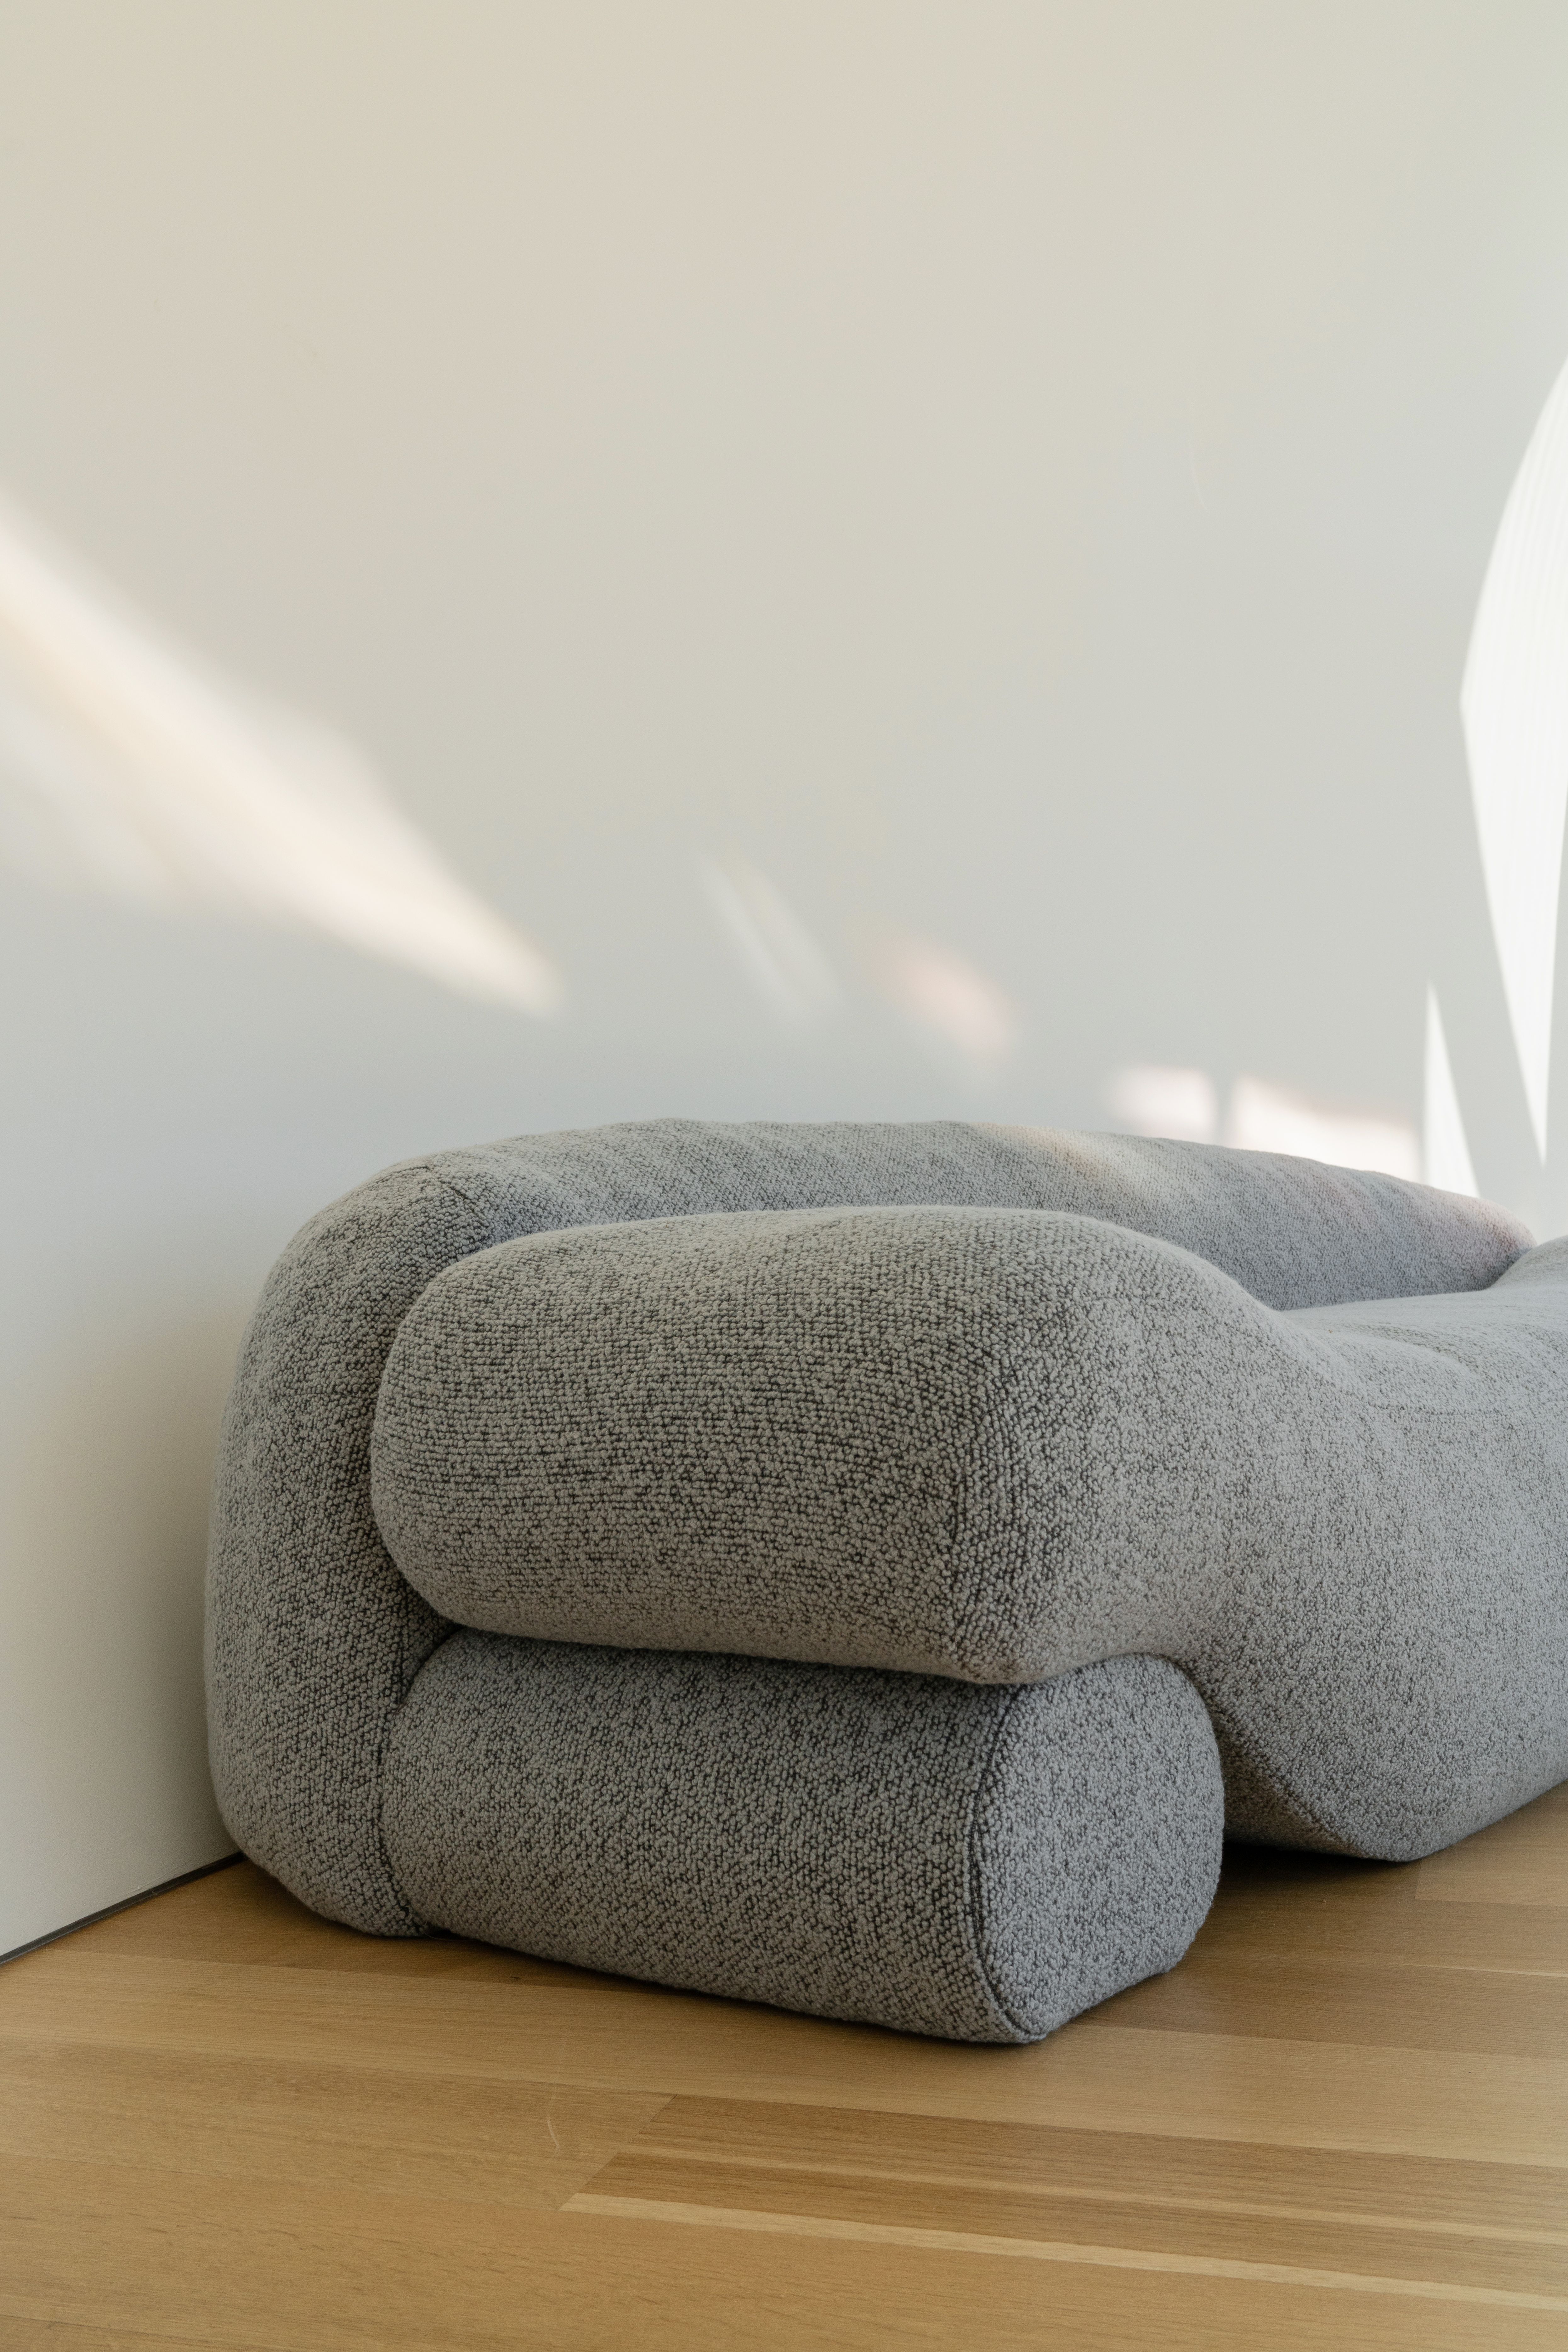 The Beanie Sofa by NEA Studio